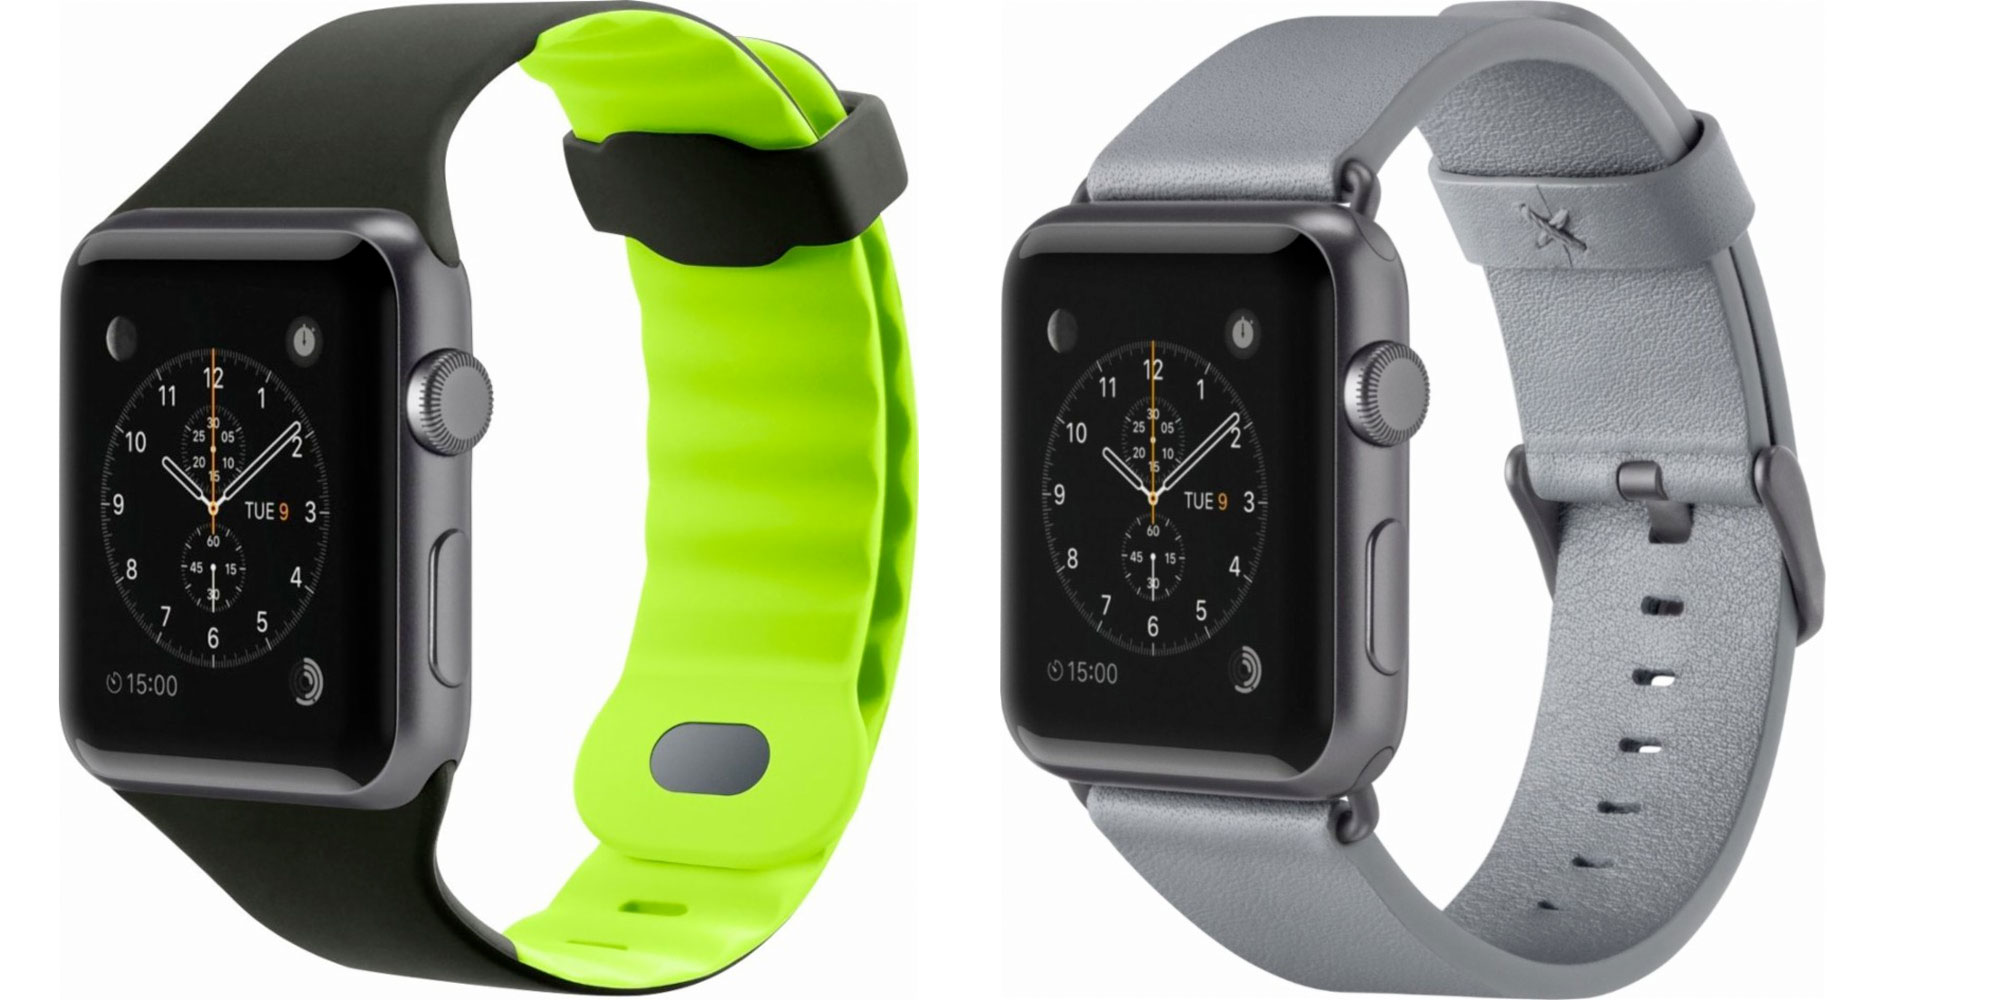 Belkin's Apple Watch Bands are 50% off at Best Buy, today only